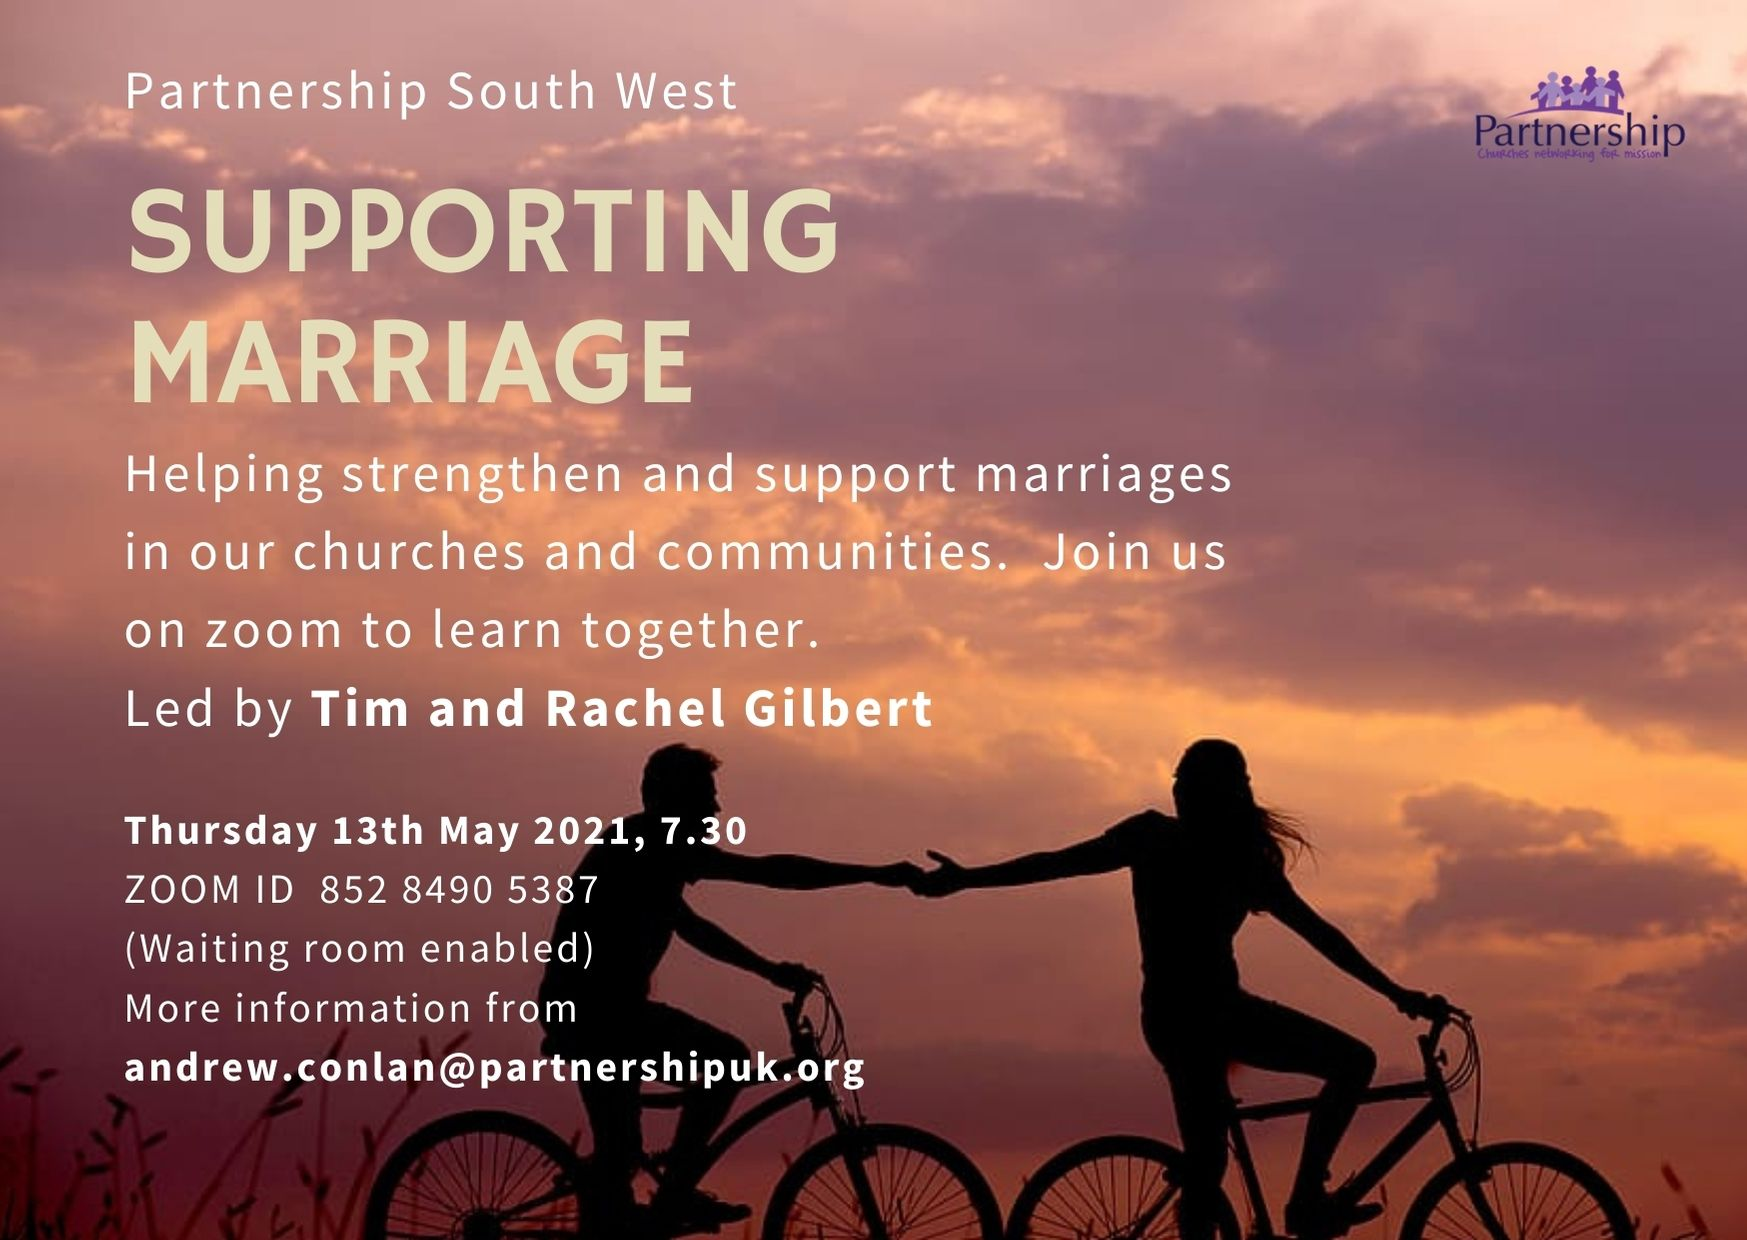 supporting marriage online event